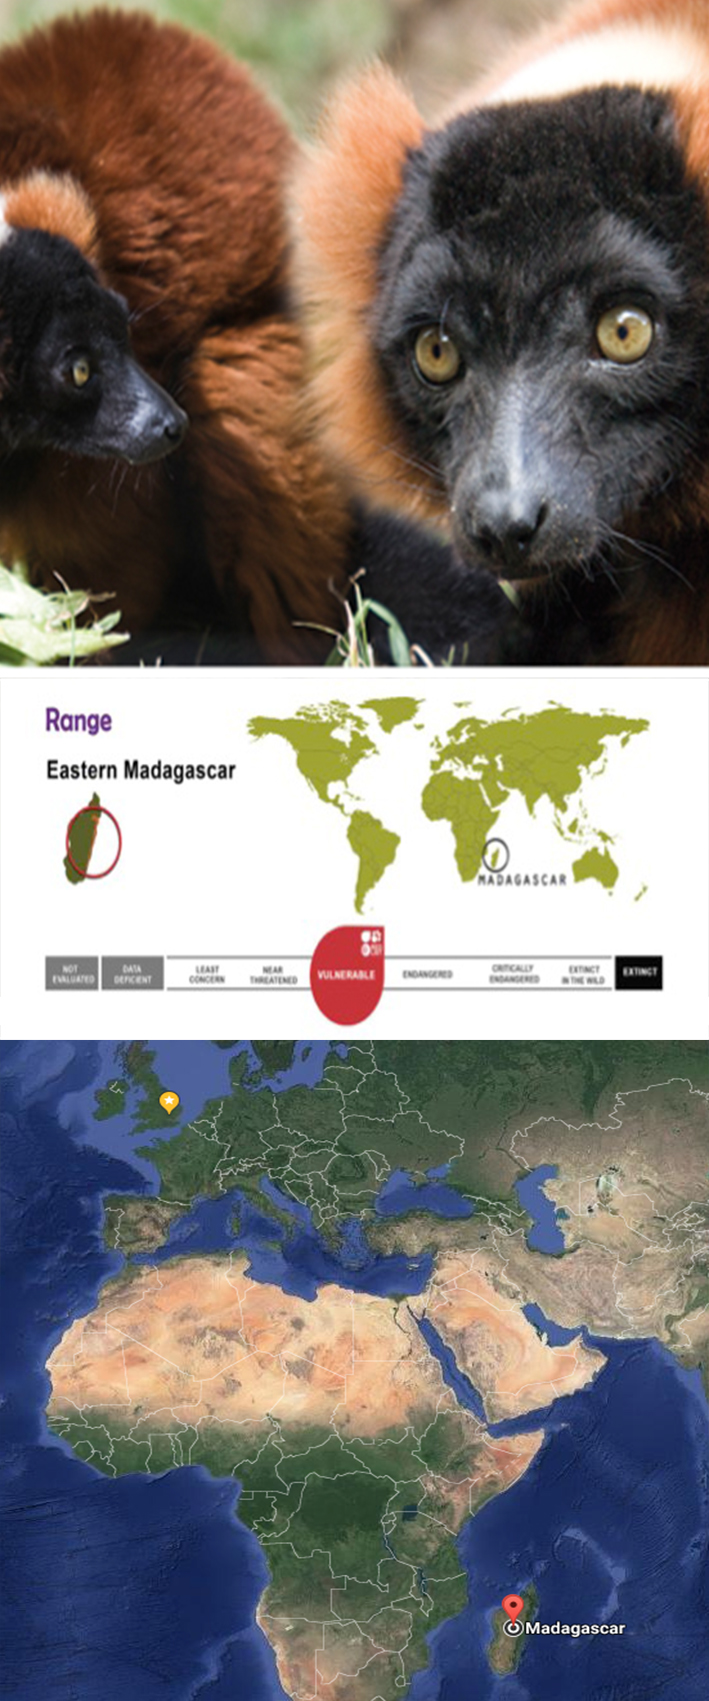 """RED-RUFFED LEMUR - Varecia rubraOne of the 25 most endangered primates in the world, red-ruffed lemurs are in serious danger of becoming extinct. Found in a very small area of Madagascar, this lemur needs the help of zoos to protect its future.Interesting fact: The ruffed lemur's thick coat keeps it warm and dry in the rainy season.Habitat & threats:Primary rain forest in the upper canopy, they prefer high forest and are often observed in the crowns of large fruiting trees. Natural predators are Fossa, Goshawk and two mongoose species. Their most significant threat is man who hunts them for bush meat and causes serious habitat loss. They are reliant on the largest trees in undisturbed forest which are the first choice of loggers. As a result, they are the first to be affected by deforestation with few areas of mature forest left.Diet:Fruit, young shoots and leaves. They are important seed dispersers. Ruffed lemurs pass seeds in their droppings within 2 hours of eating fruit.Breeding and social dynamics:They live in large family groups ruled by a dominant female. Twins are normally born and infants are """"parked"""" for the first week in a nest. Instead of clinging on like many lemurs, baby ruffed lemurs are carried in their mother's mouth. Both males and females care for the young.Conservation:It is protected officially only within the Masoala National Park and the Makira Protected Area. However, Masoala was the national park most heavily impacted by the very rapid upsurge of illegal logging after the political events of early 2009. This species is part of a managed European breeding programme."""